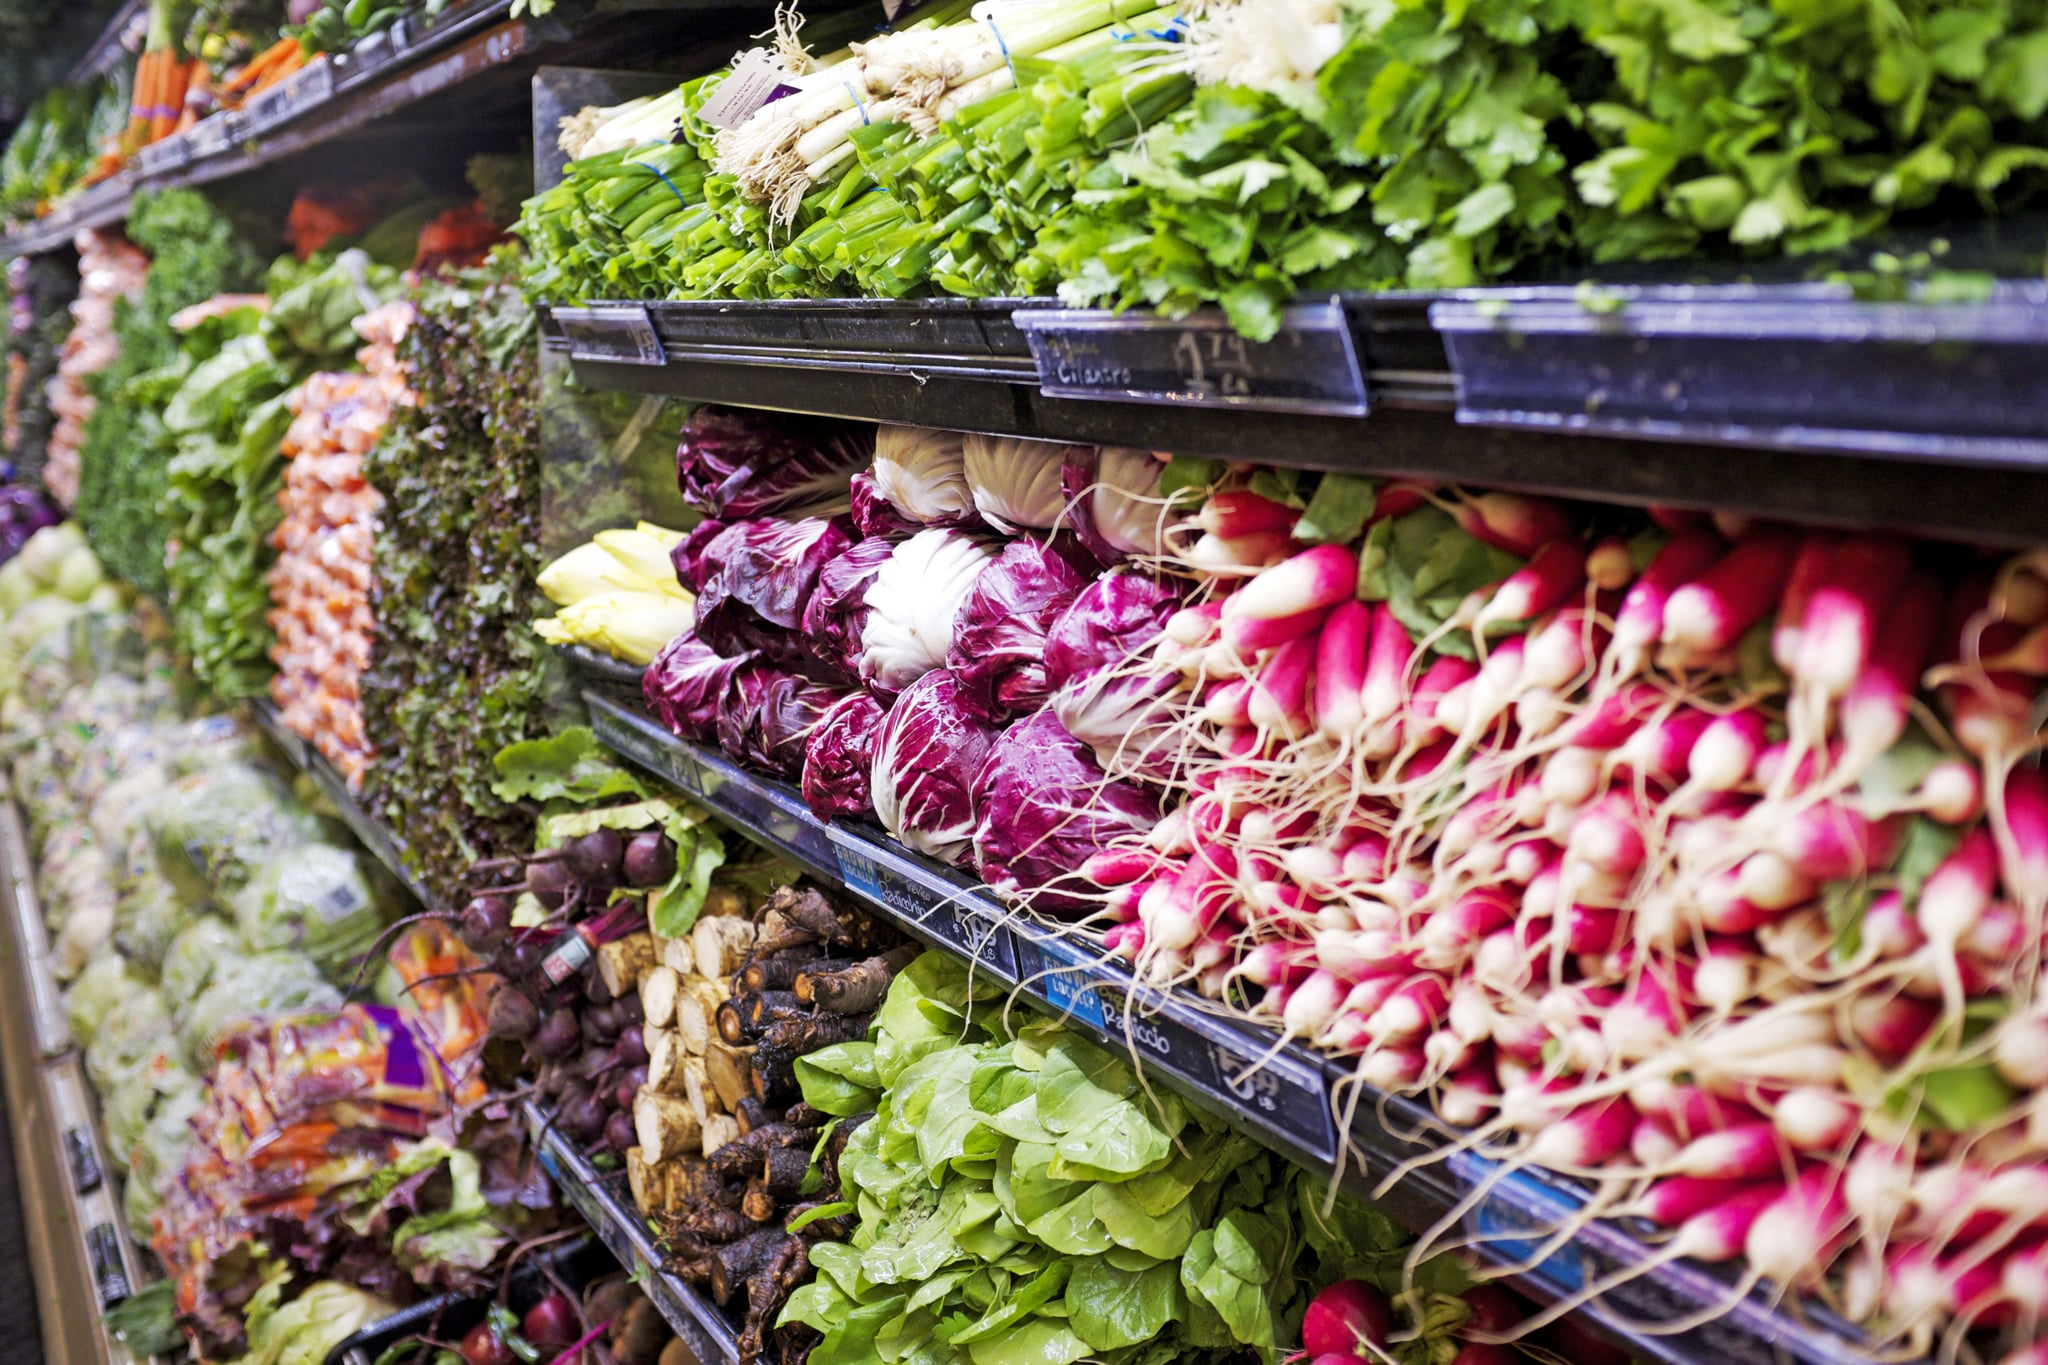 Trying to Lose Weight? Use This Food Shopping Guide